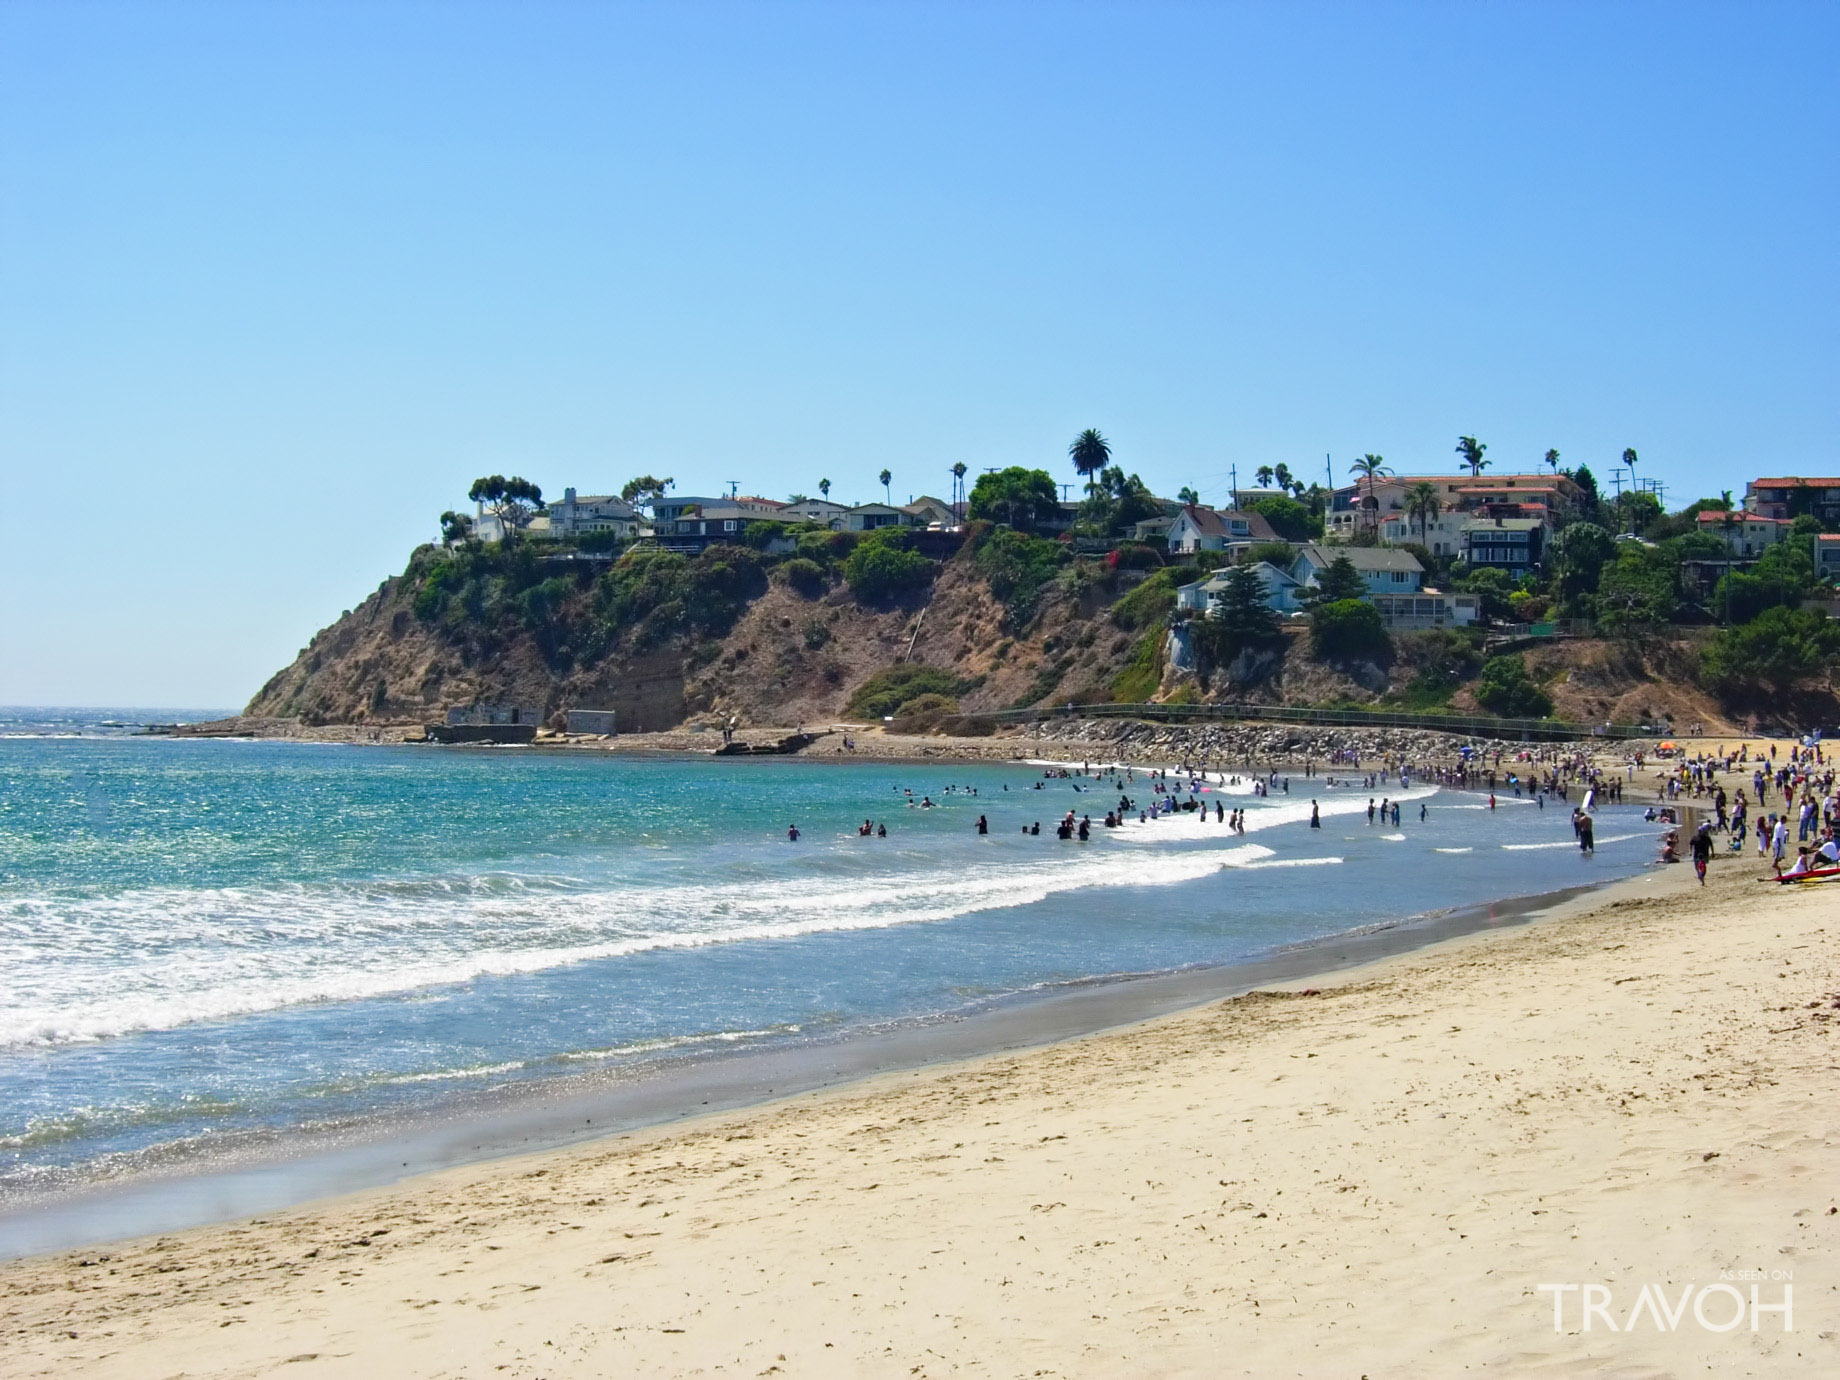 Cabrillo Beach – Exploring 10 of the Top Beaches in Los Angeles, California